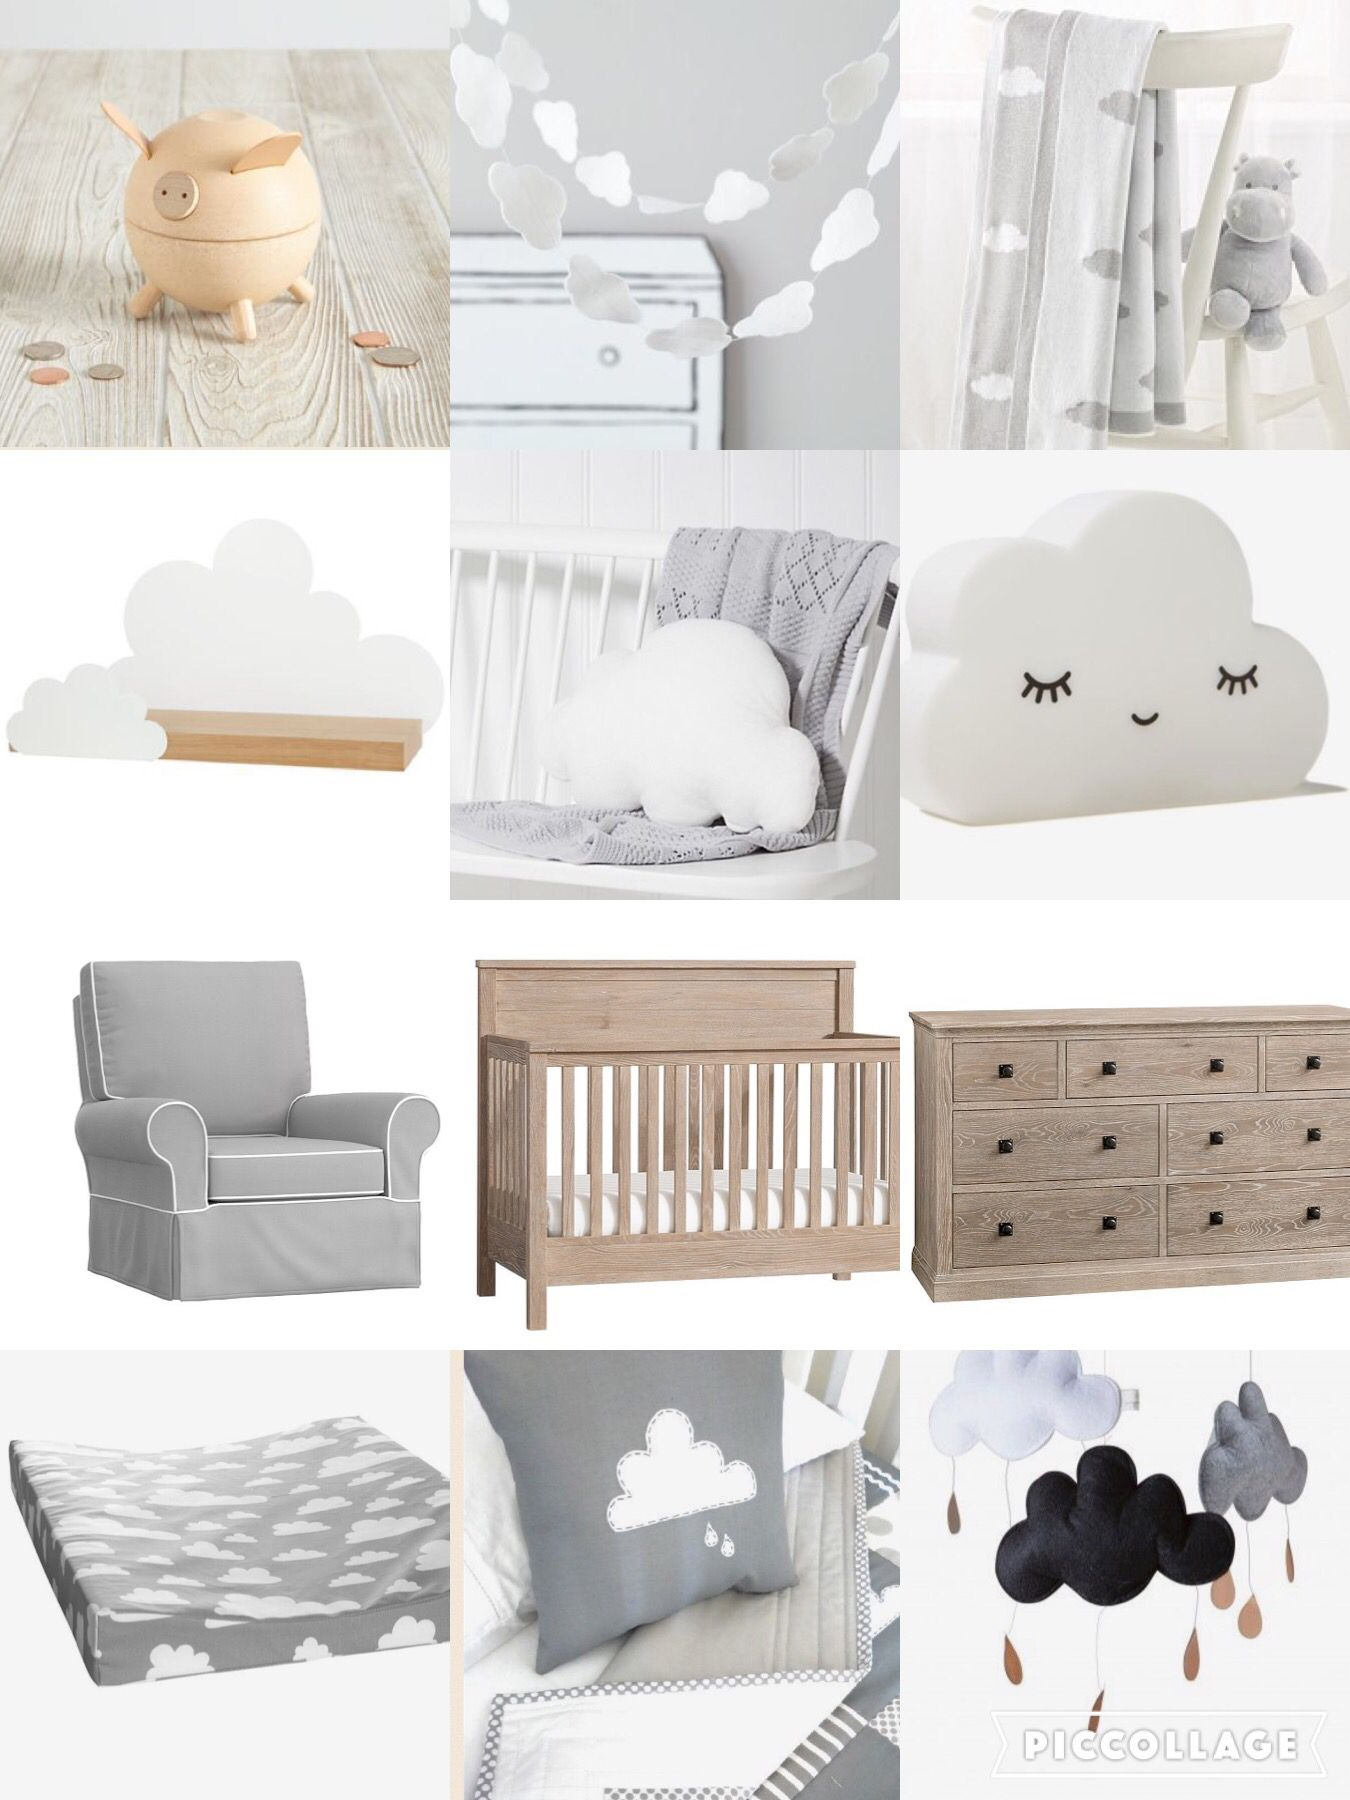 Farg form baby changing table mat grey clouds - Cloud Nursery Theme More